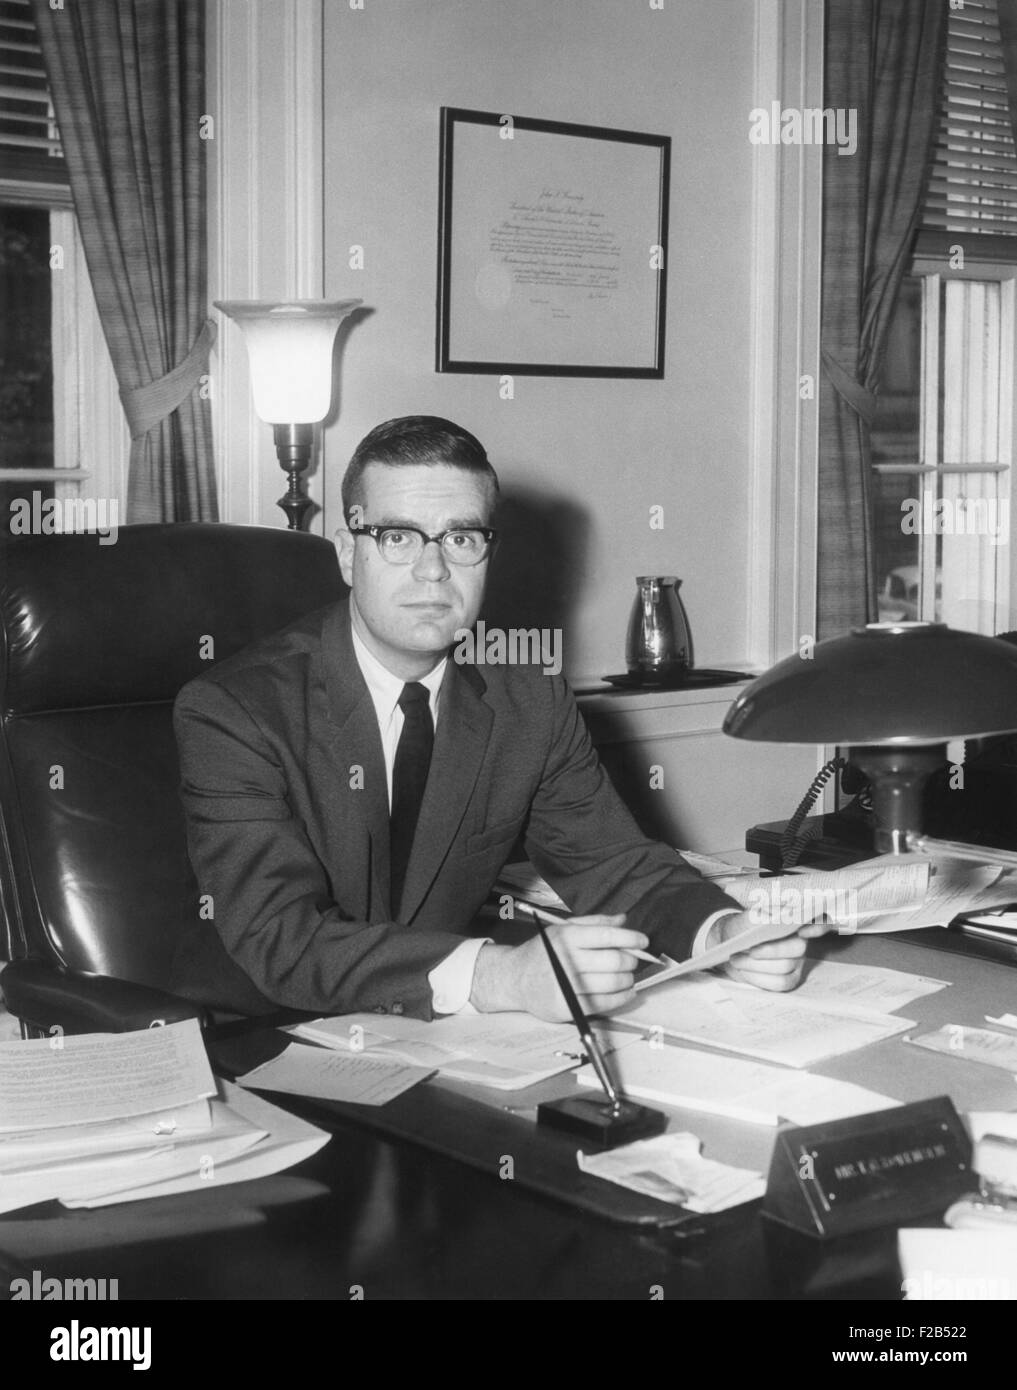 Theodore Sorensen, Special Counsel and speech writer to JFK in his White House office. He was one of the 'intellectuals' - Stock Image